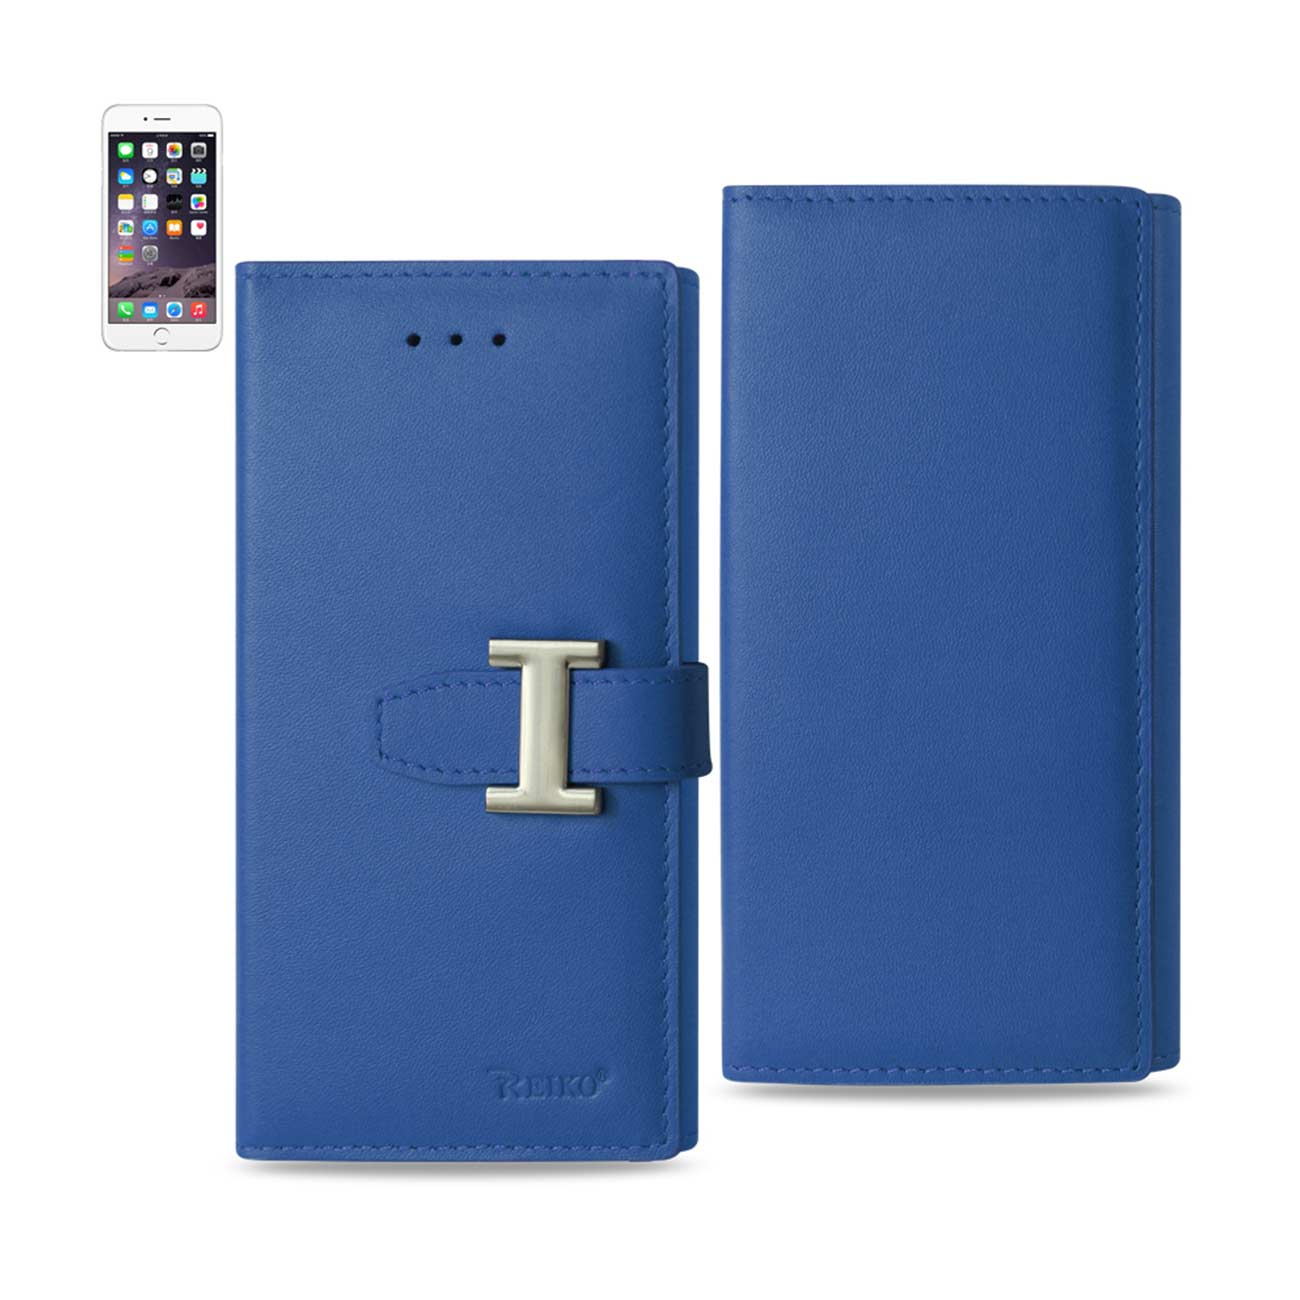 IPHONE 6 PLUS GENUINE LEATHER RFID WALLET CASE IN ULTRAMARINE